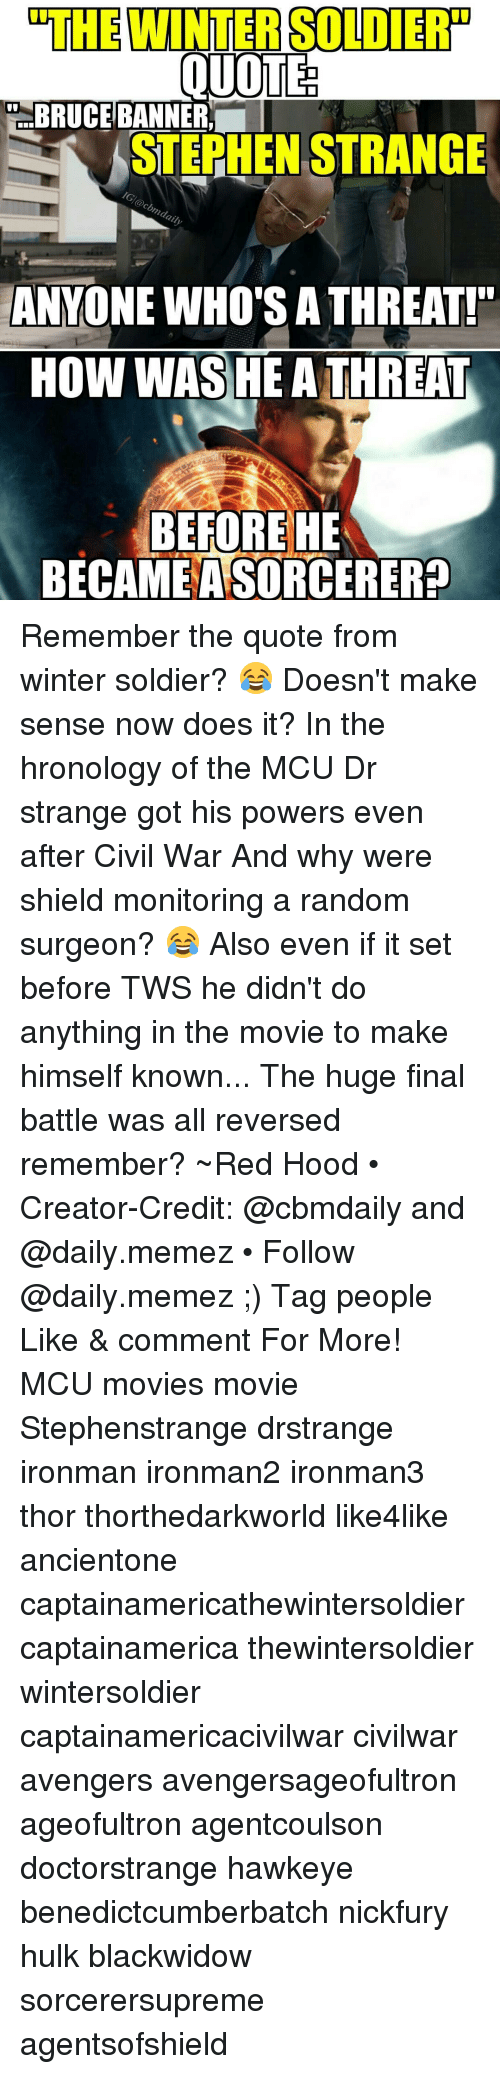 Memes, Soldiers, and Stephen: OTHEWINTERSOLDIERTP  OUDTE  BRUCE BANNER  STEPHEN STRANGE  ANYONE WHOOTSATHREAT!  HOW WAS HE A THREAT  BEFORE HE  BECAME  ASORCERER? Remember the quote from winter soldier? 😂 Doesn't make sense now does it? In the hronology of the MCU Dr strange got his powers even after Civil War And why were shield monitoring a random surgeon? 😂 Also even if it set before TWS he didn't do anything in the movie to make himself known... The huge final battle was all reversed remember? ~Red Hood • Creator-Credit: @cbmdaily and @daily.memez • Follow @daily.memez ;) Tag people Like & comment For More! MCU movies movie Stephenstrange drstrange ironman ironman2 ironman3 thor thorthedarkworld like4like ancientone captainamericathewintersoldier captainamerica thewintersoldier wintersoldier captainamericacivilwar civilwar avengers avengersageofultron ageofultron agentcoulson doctorstrange hawkeye benedictcumberbatch nickfury hulk blackwidow sorcerersupreme agentsofshield